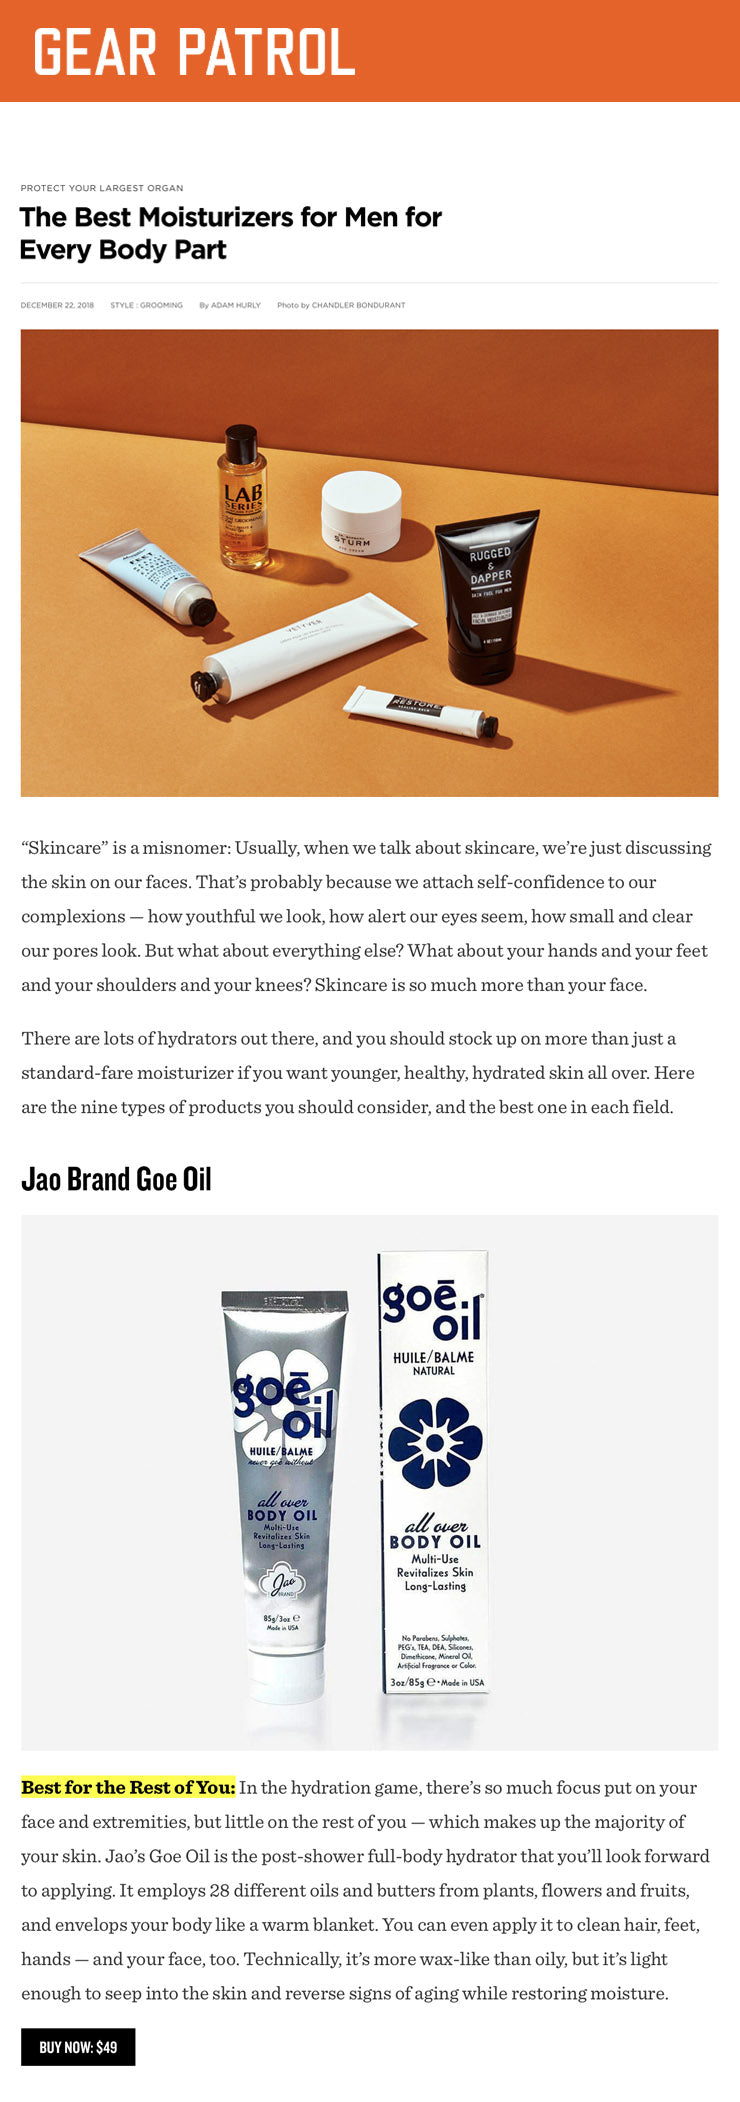 Gear Patrol - Goe Oil - The Best Moisturizers for Men for Every Body Part